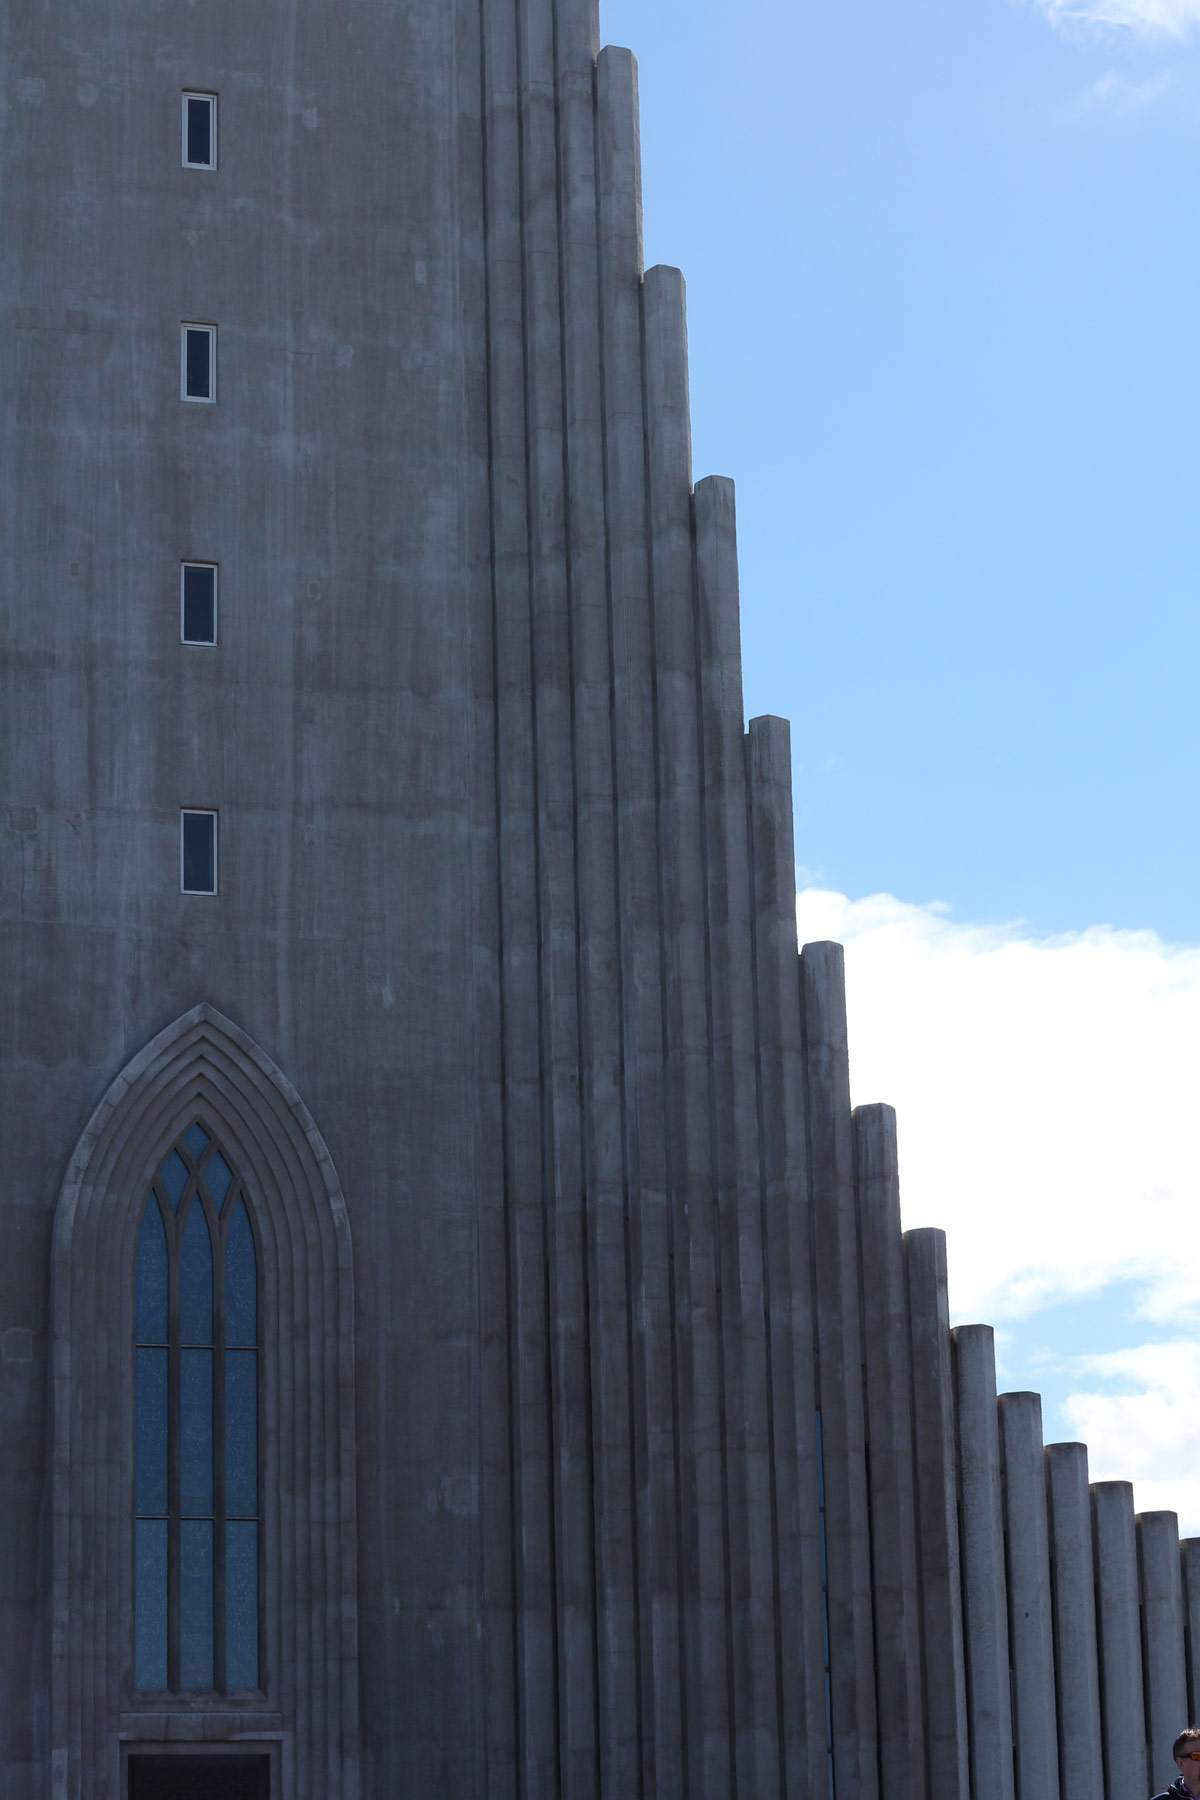 iceland-reykjavik-keflavik-review-photo-diary-travel-blog-church-view-1